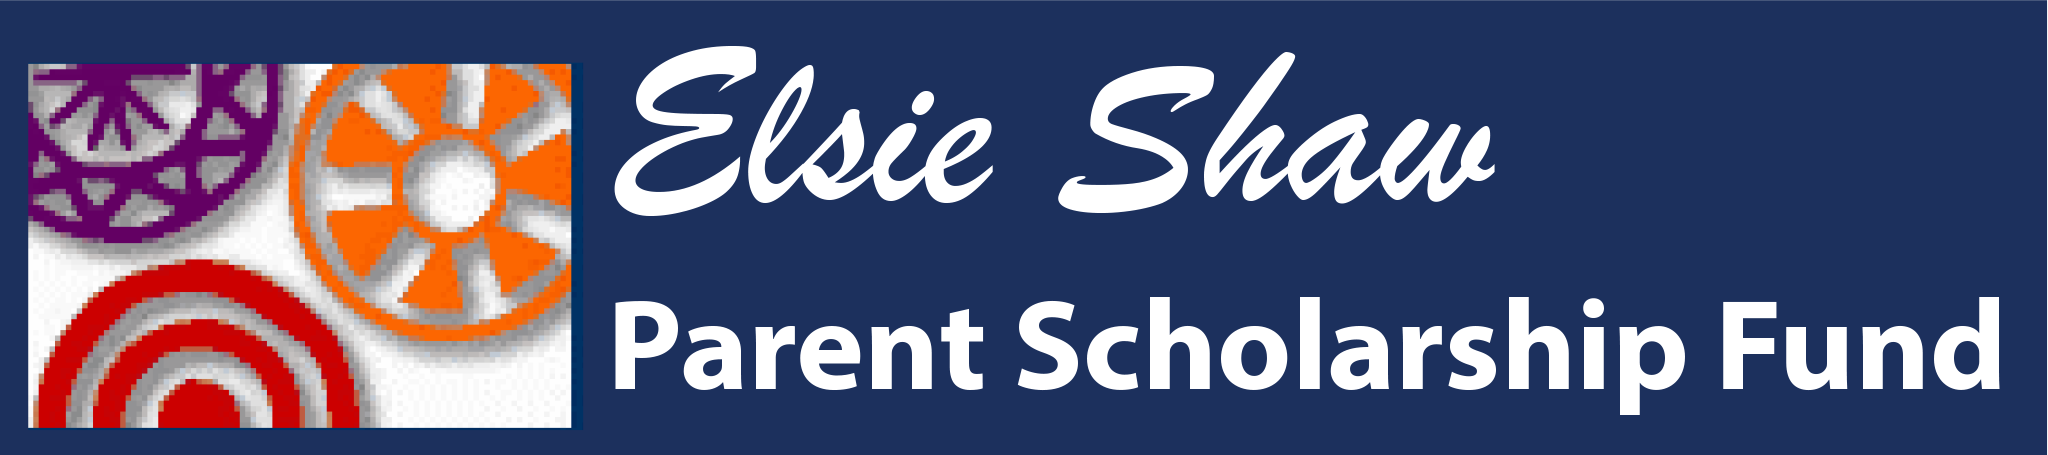 Elsie Shaw Scholarship Fund